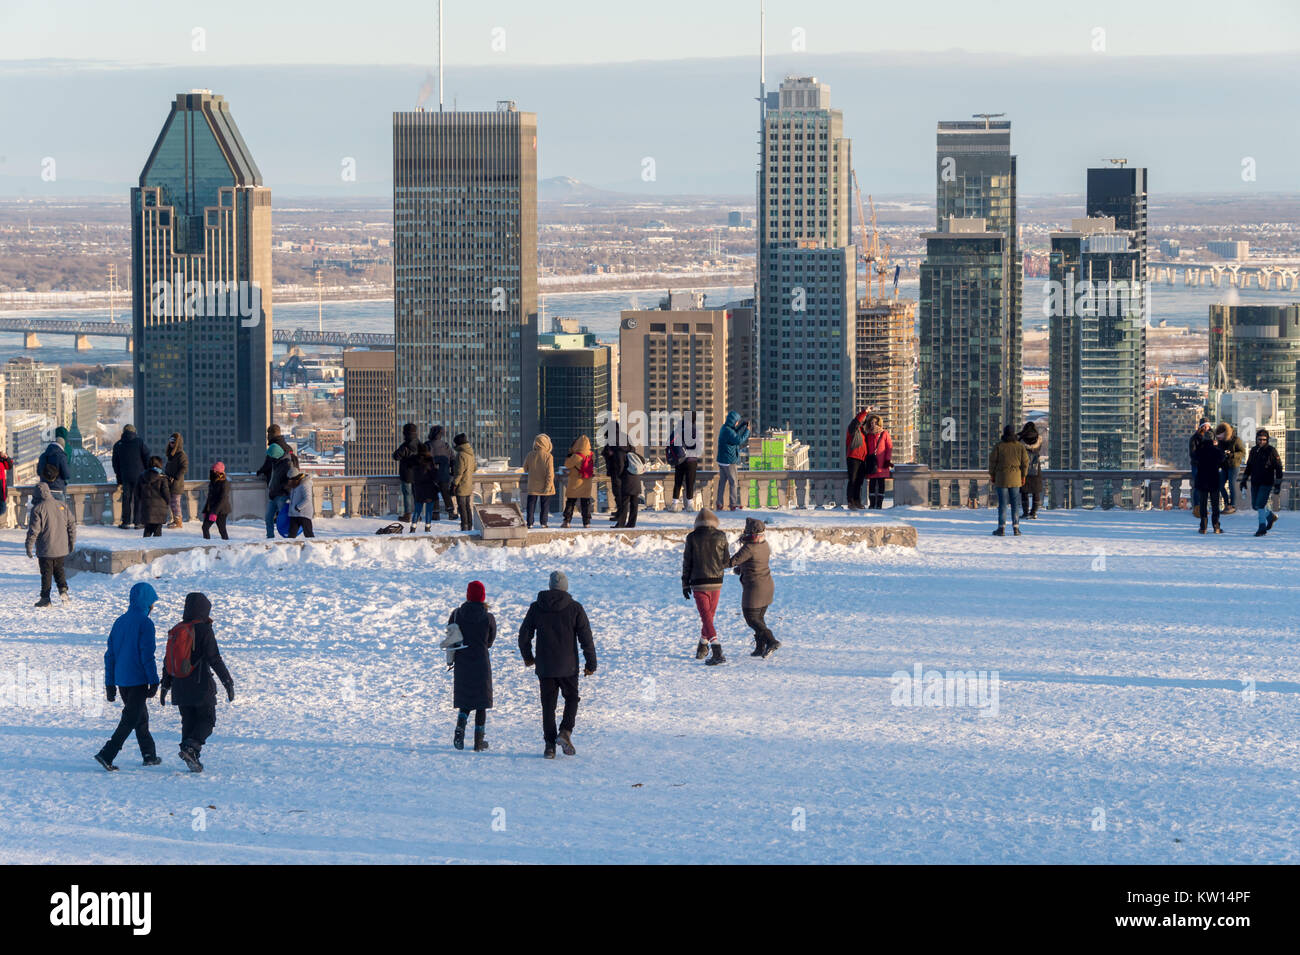 Montreal, CA - 26/12/2017: People at the Kondiaronk Belvedere located at the summit of Mont Royal. The belvedere - Stock Image